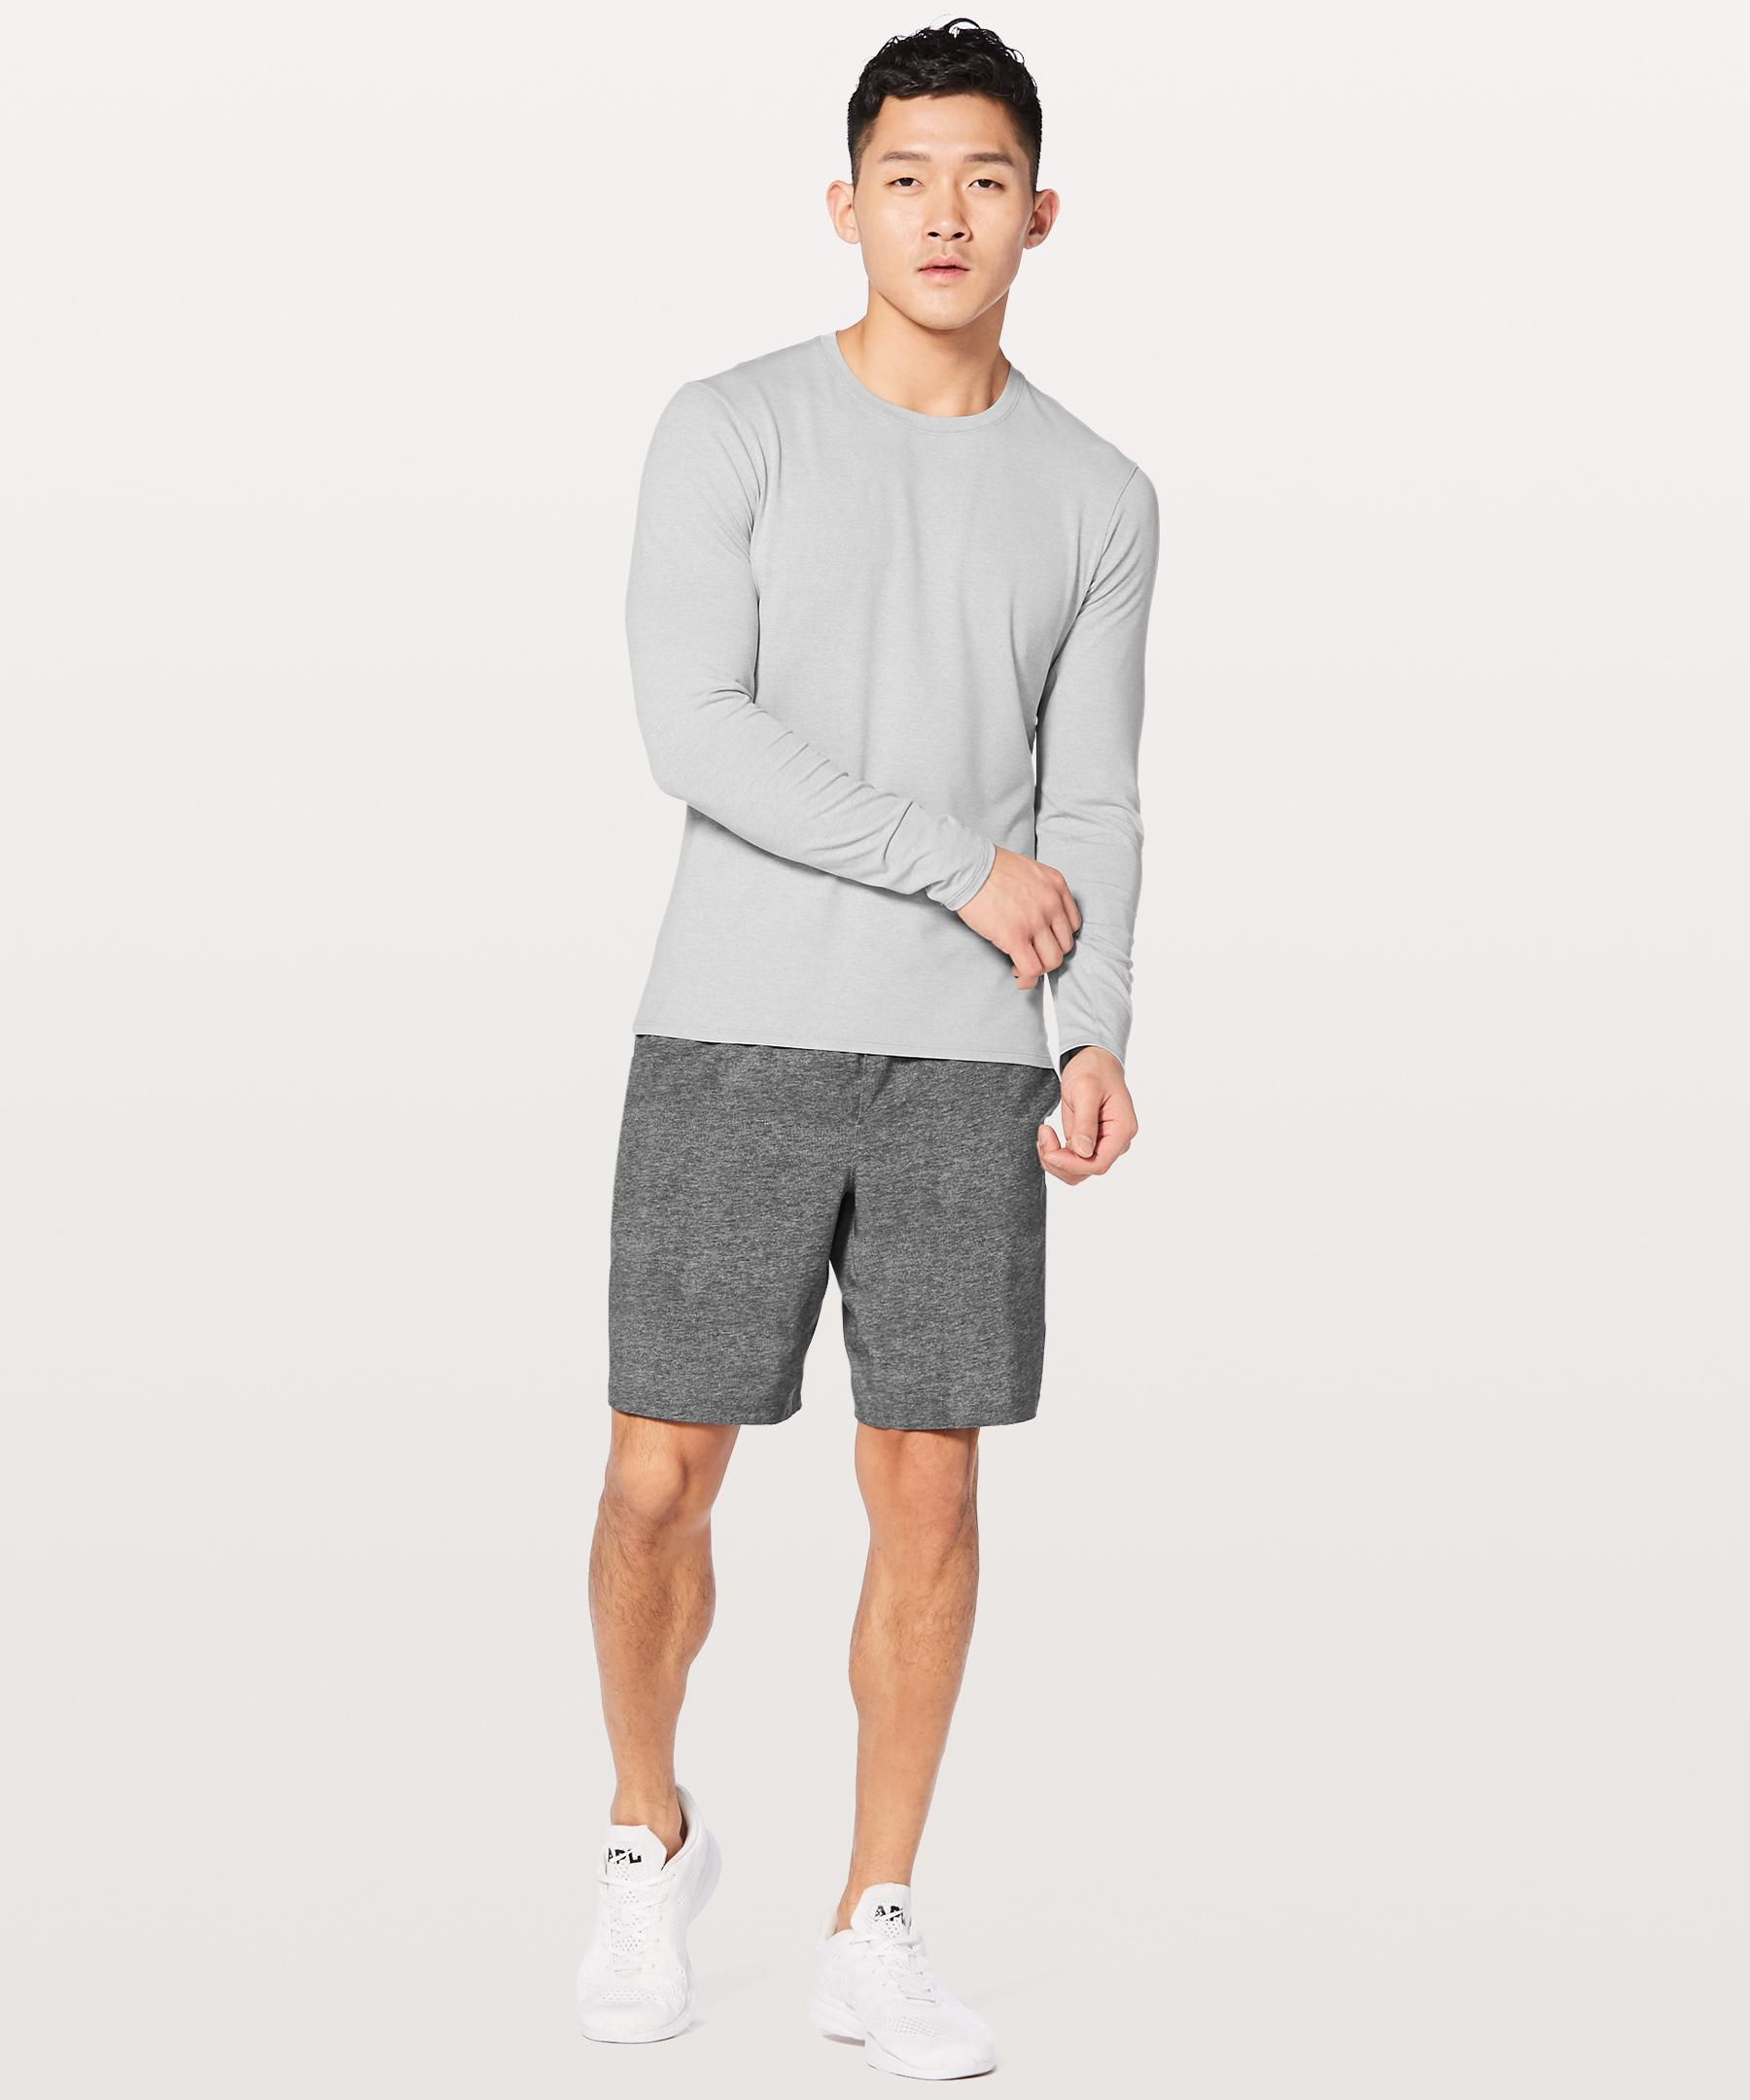 60564aa10c298a Lyst - lululemon athletica Drysense Mesh Long Sleeve in Gray for Men ...